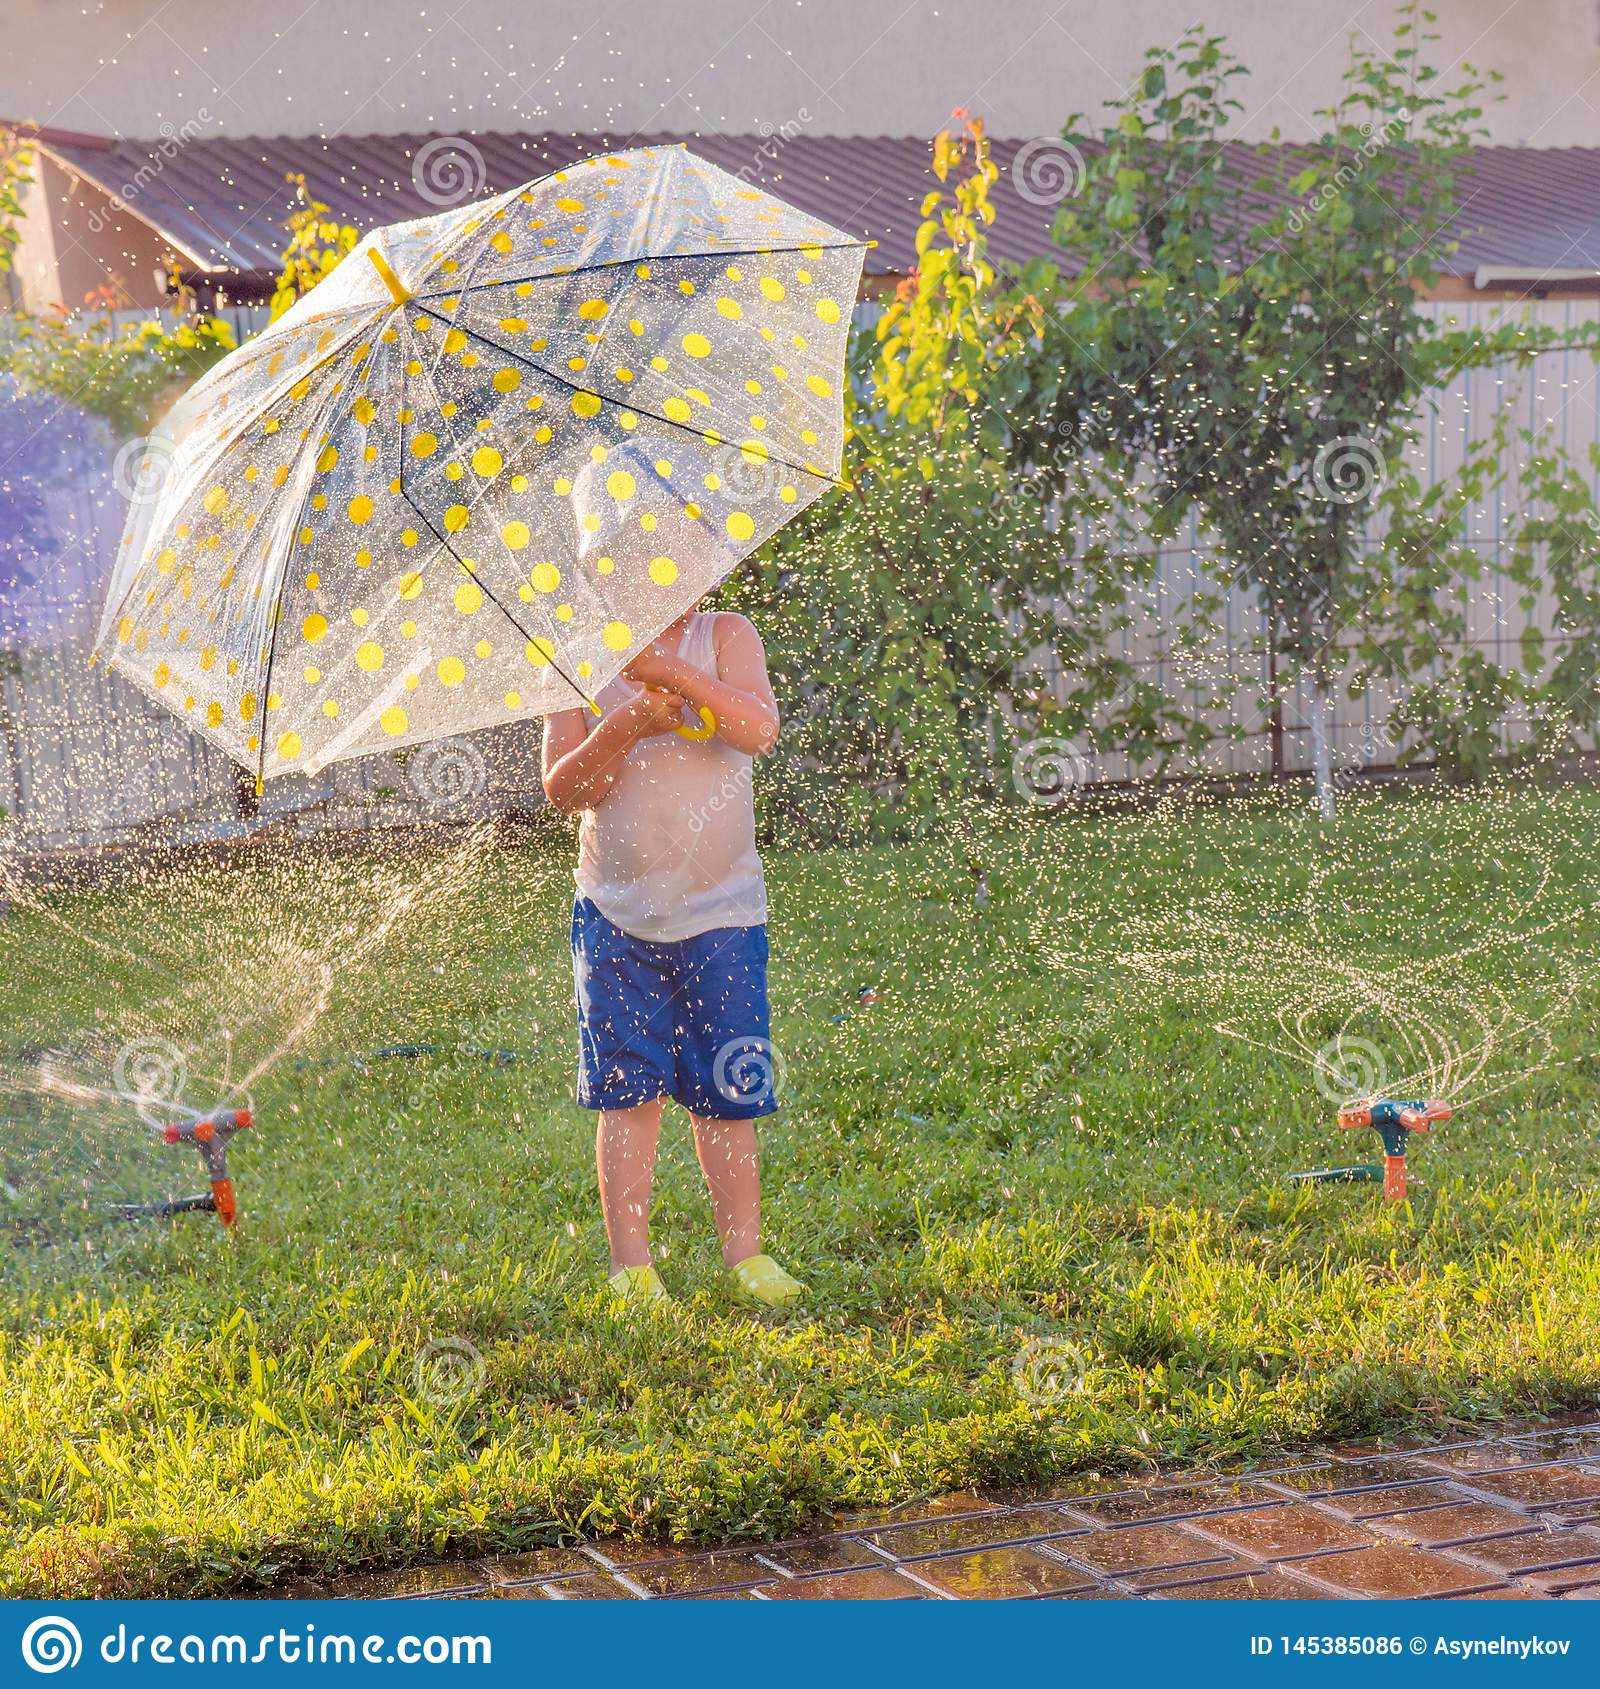 Summer outdoor activities. Children playing outdoor on front yard. Boy with umbrella having fun near automatic plant